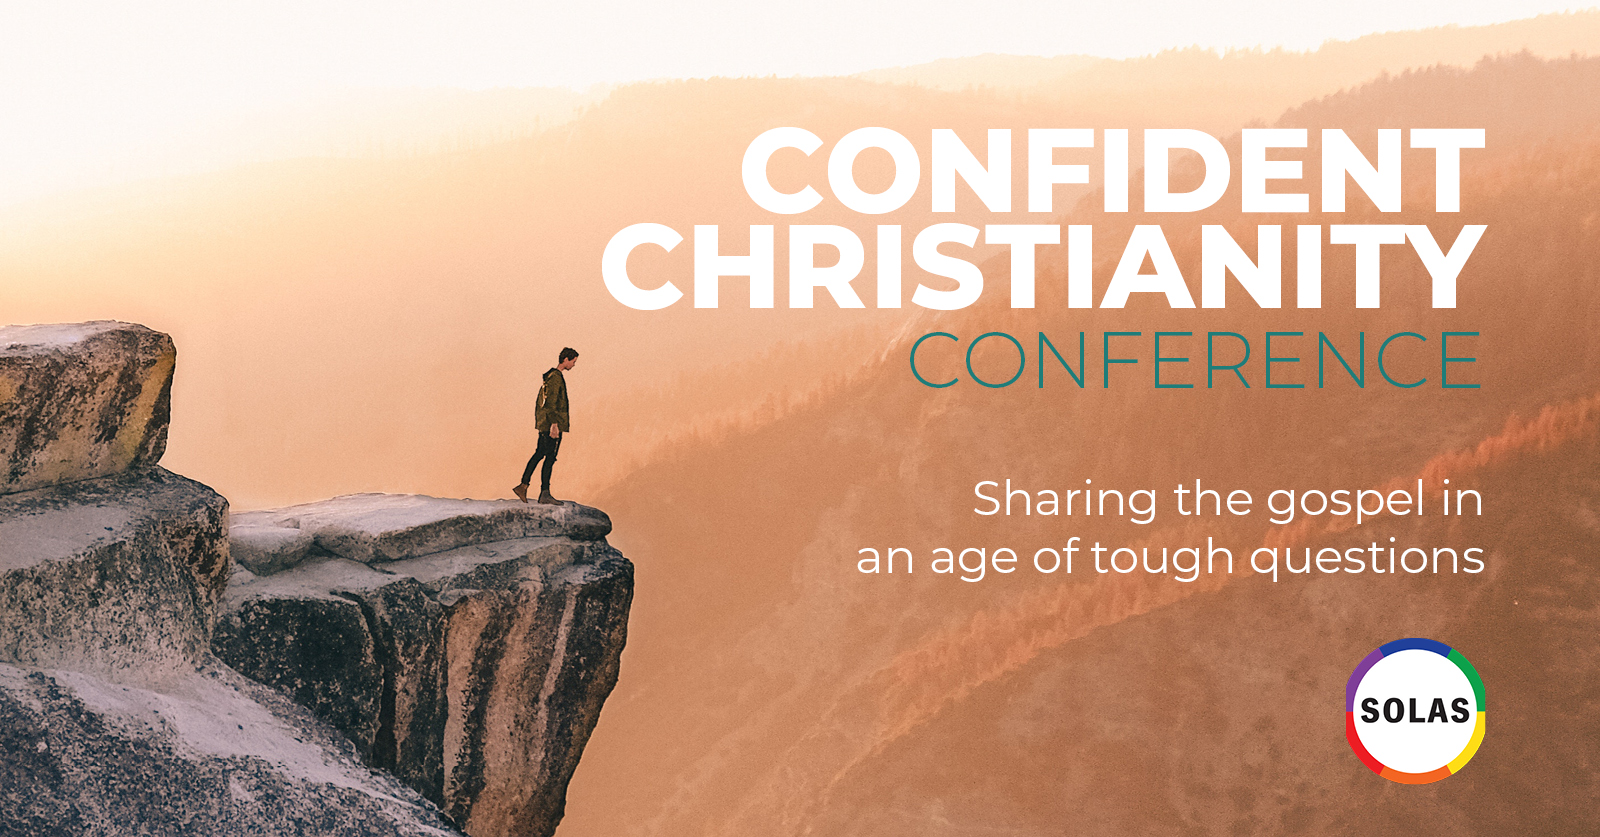 Confident Christianity conference banner